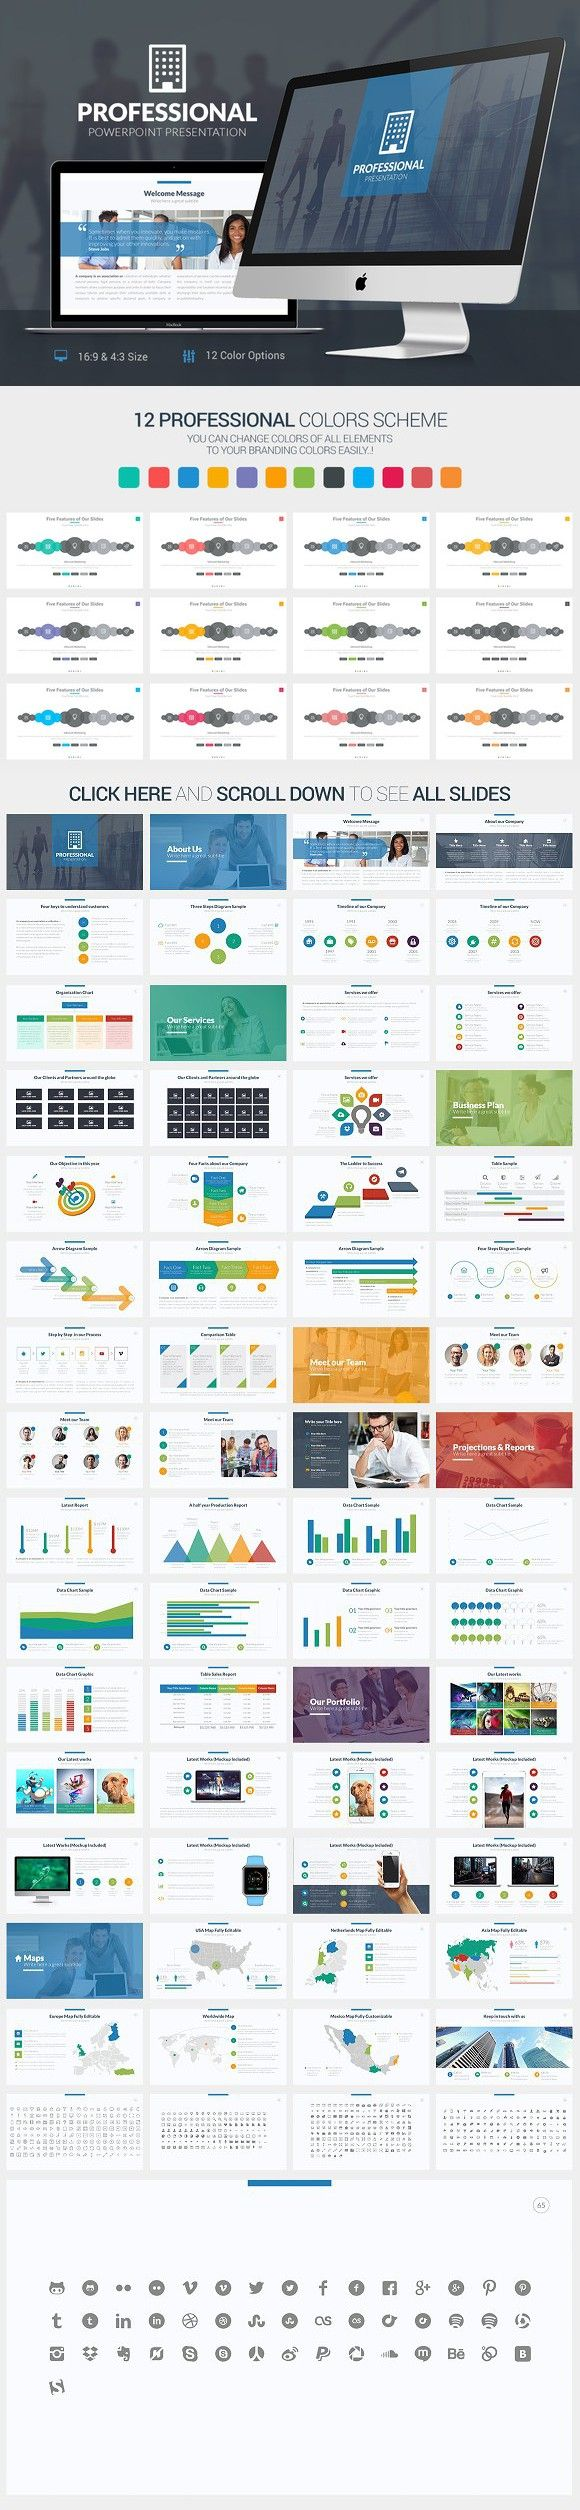 Professional Powerpoint Template. Business Infographic. $20.00